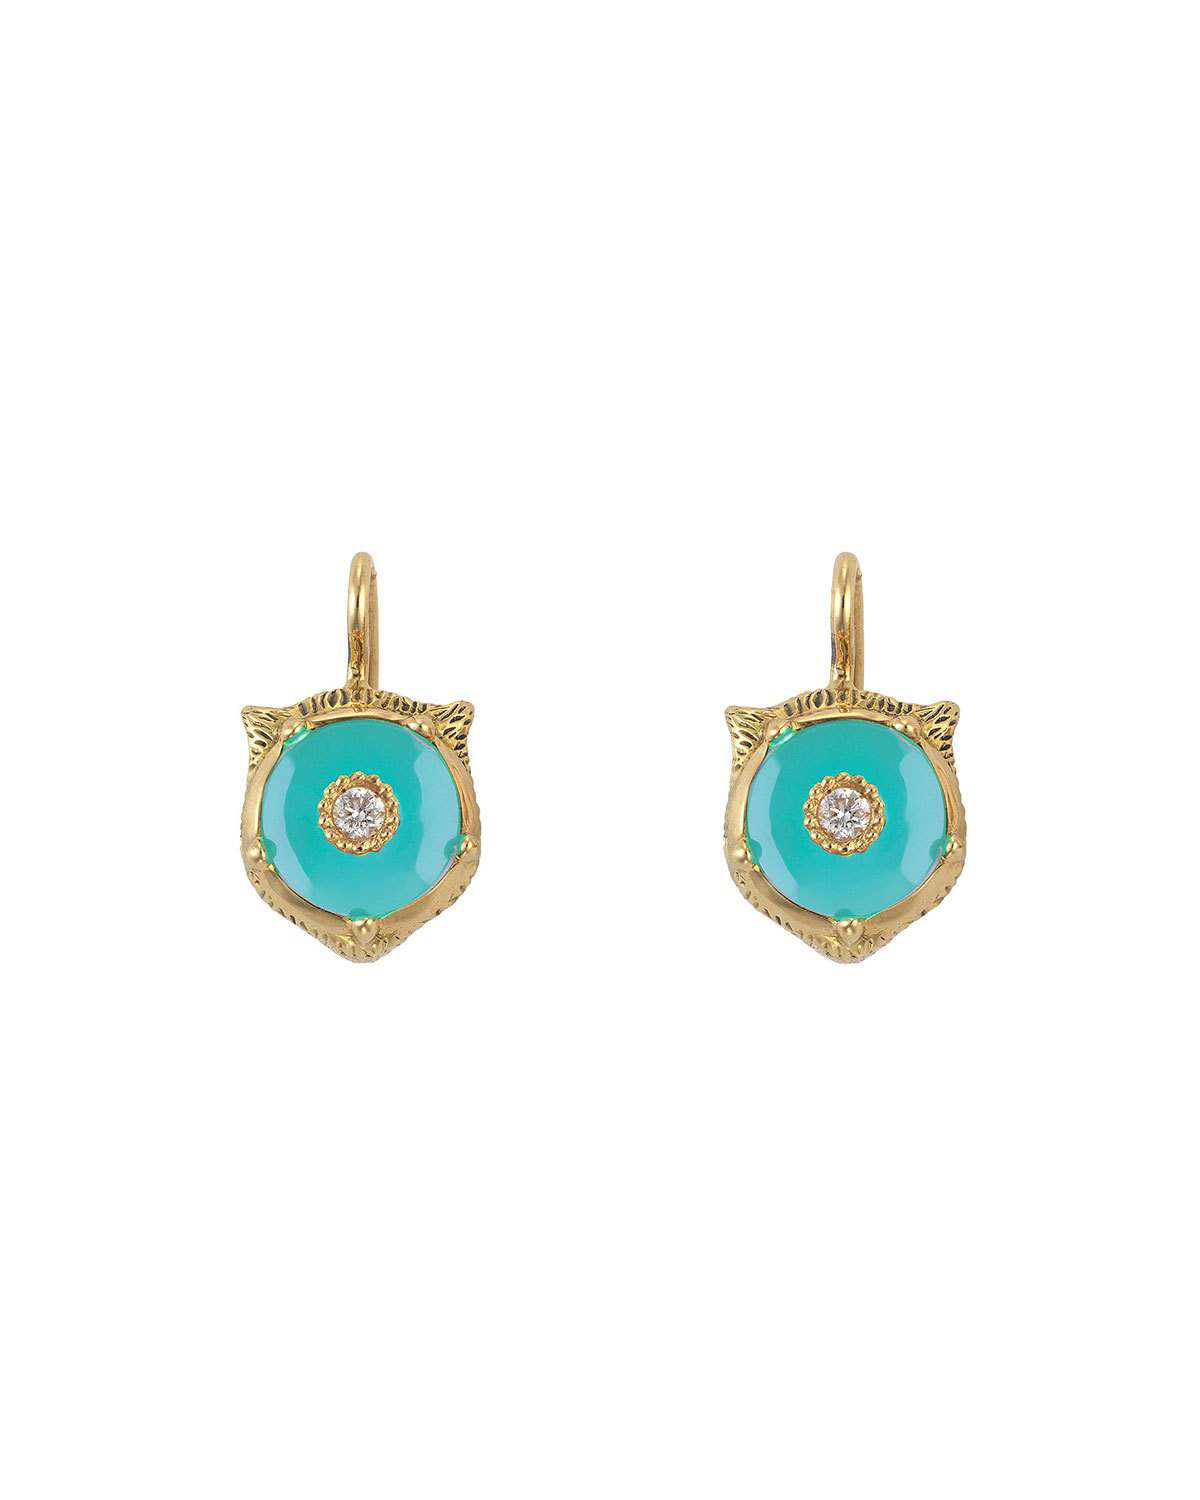 96b9772ab Gucci Le Marche Des Merveilles 18K Yellow Gold Feline Head Turquoise &  Diamond Drop Earrings In